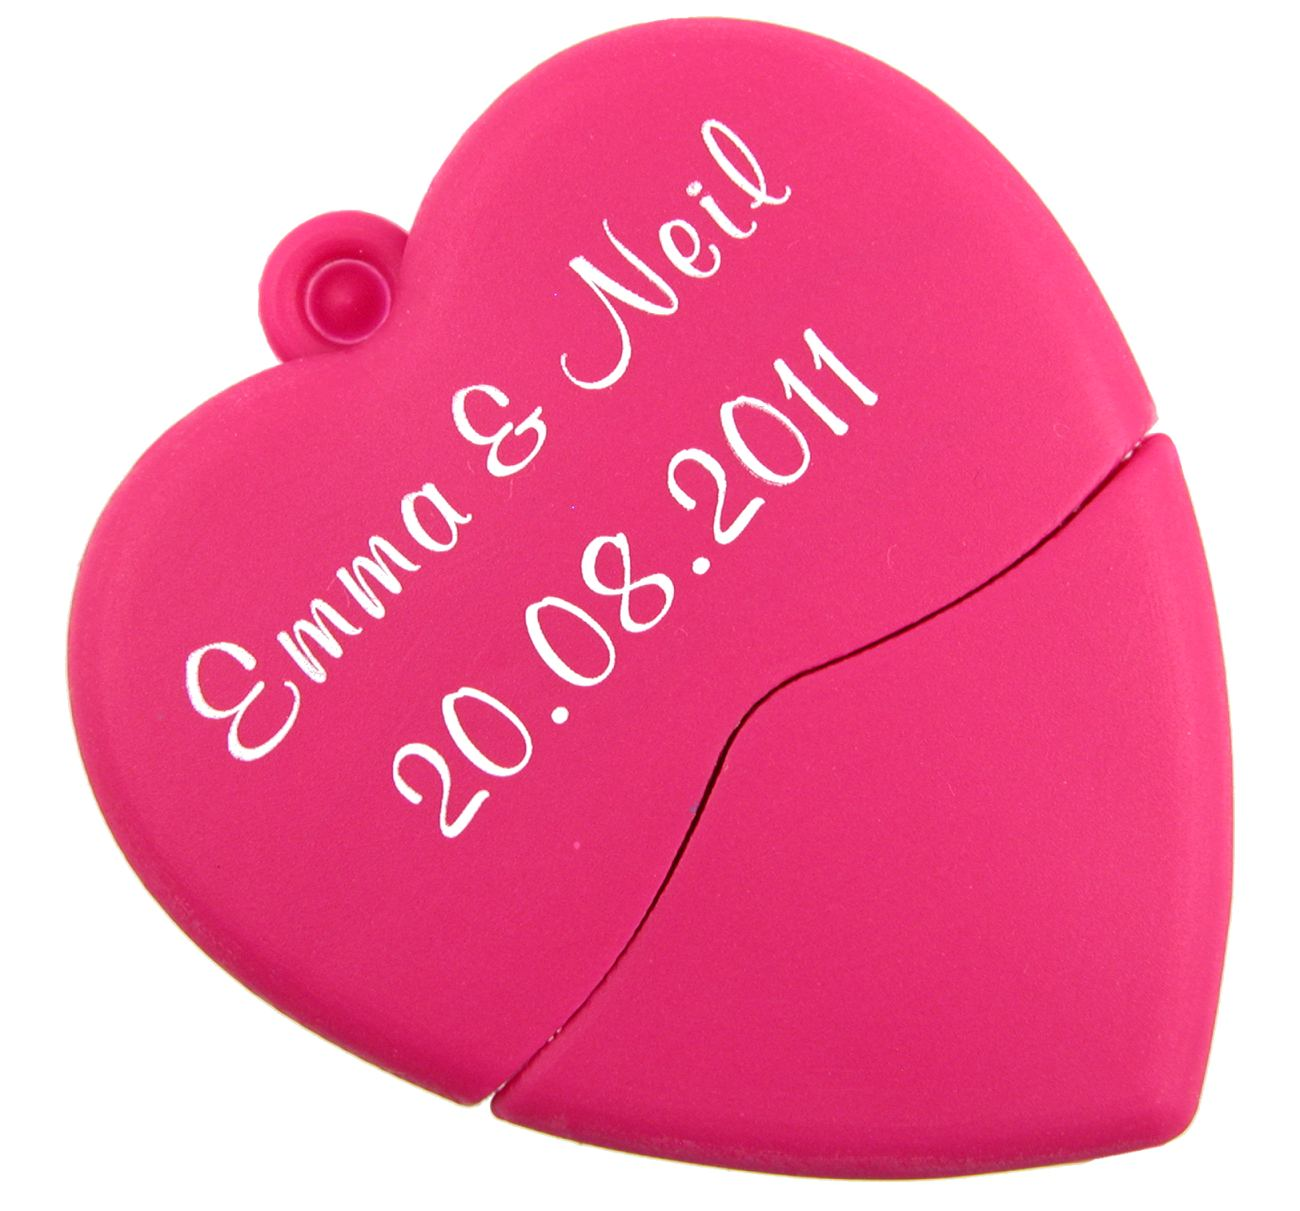 Wedding Usb Flash Drive Pink Heart Printed With Bride And Groom Names Cd232